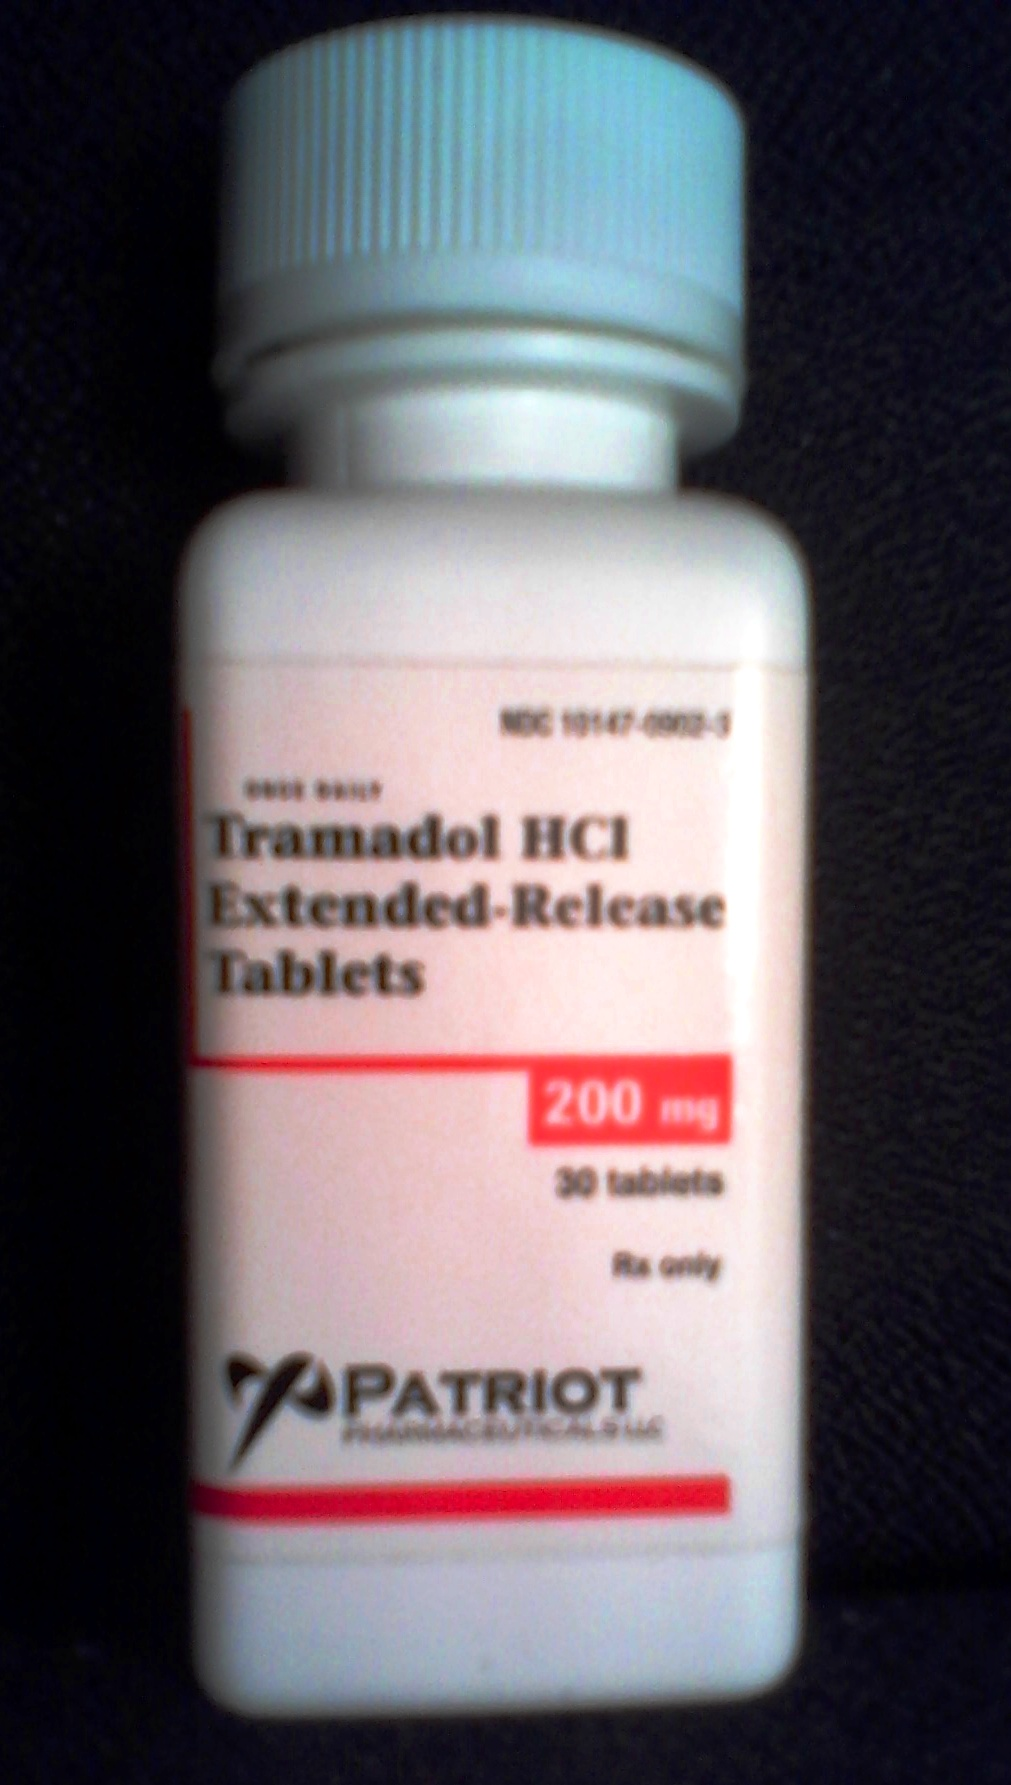 Tramadol Oral : Uses, Side Effects, Interactions, Pictures ...